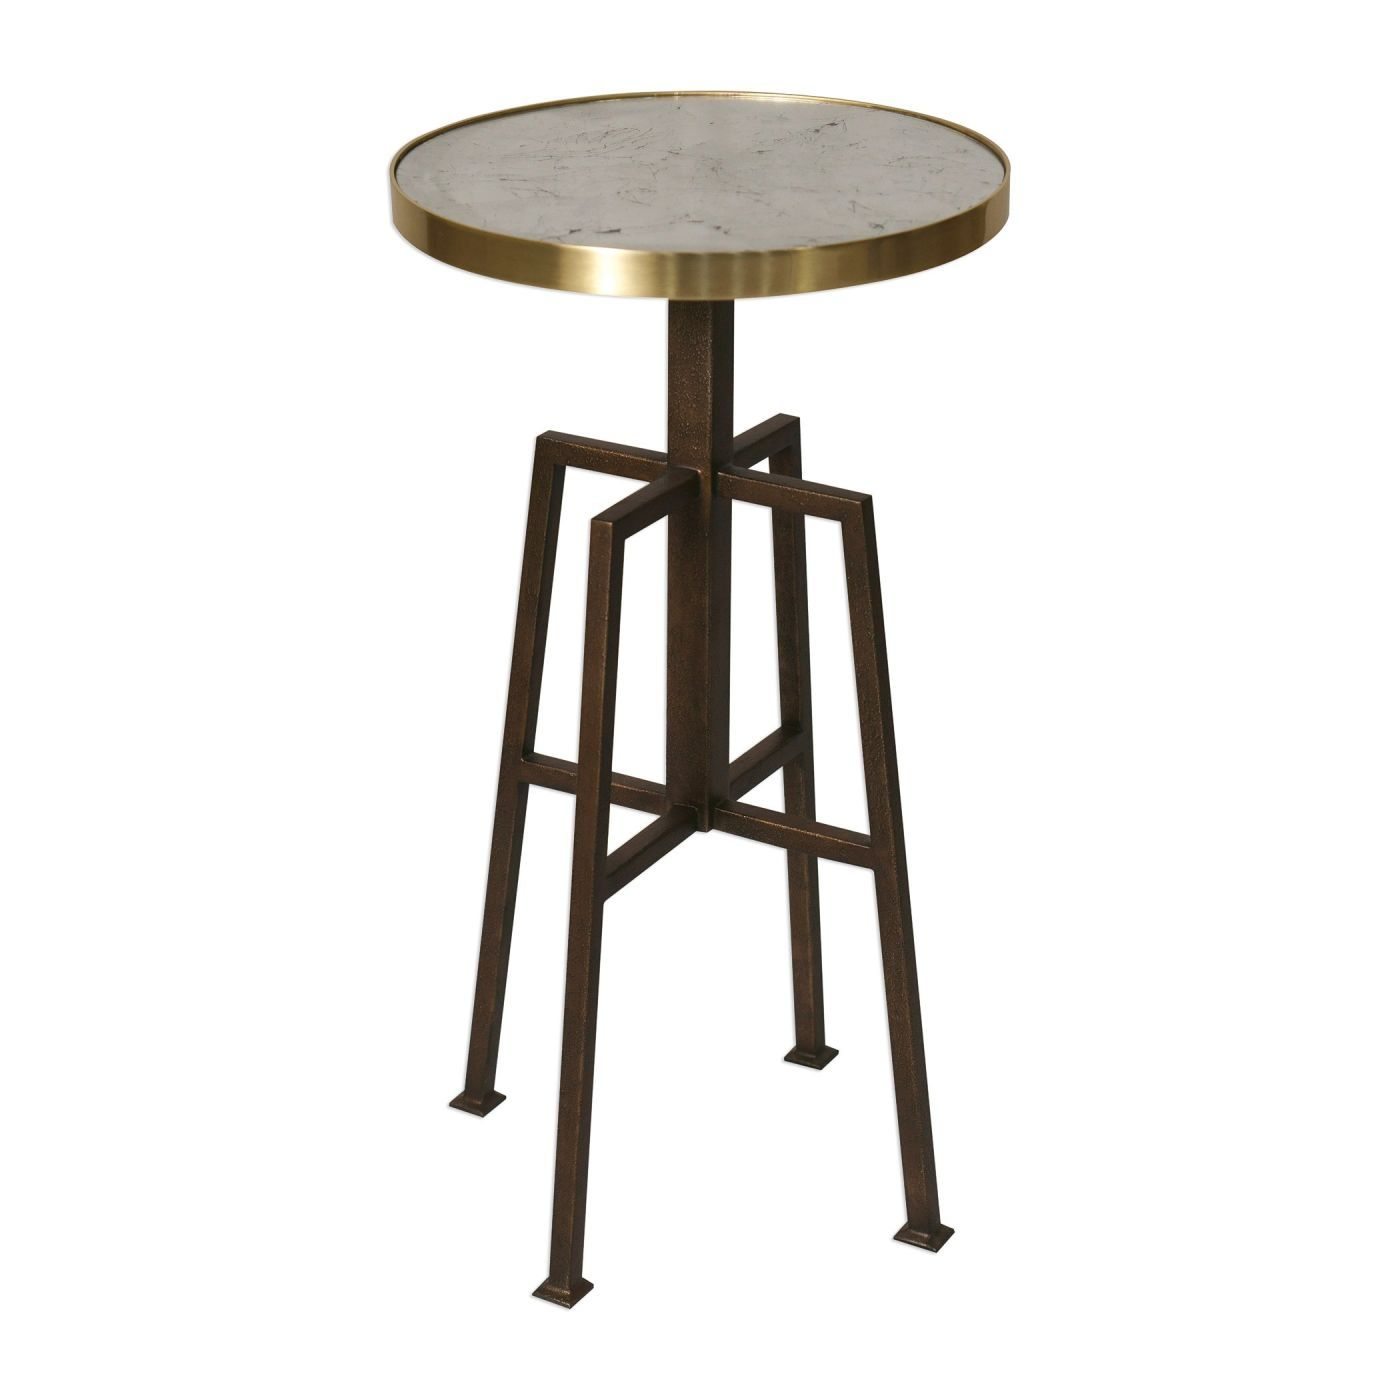 amazing uttermost utt gisele round accent table side tables textured aged bronze retro wooden chairs coffee with drawers ikea threshold furniture outdoor patio cement modern legs